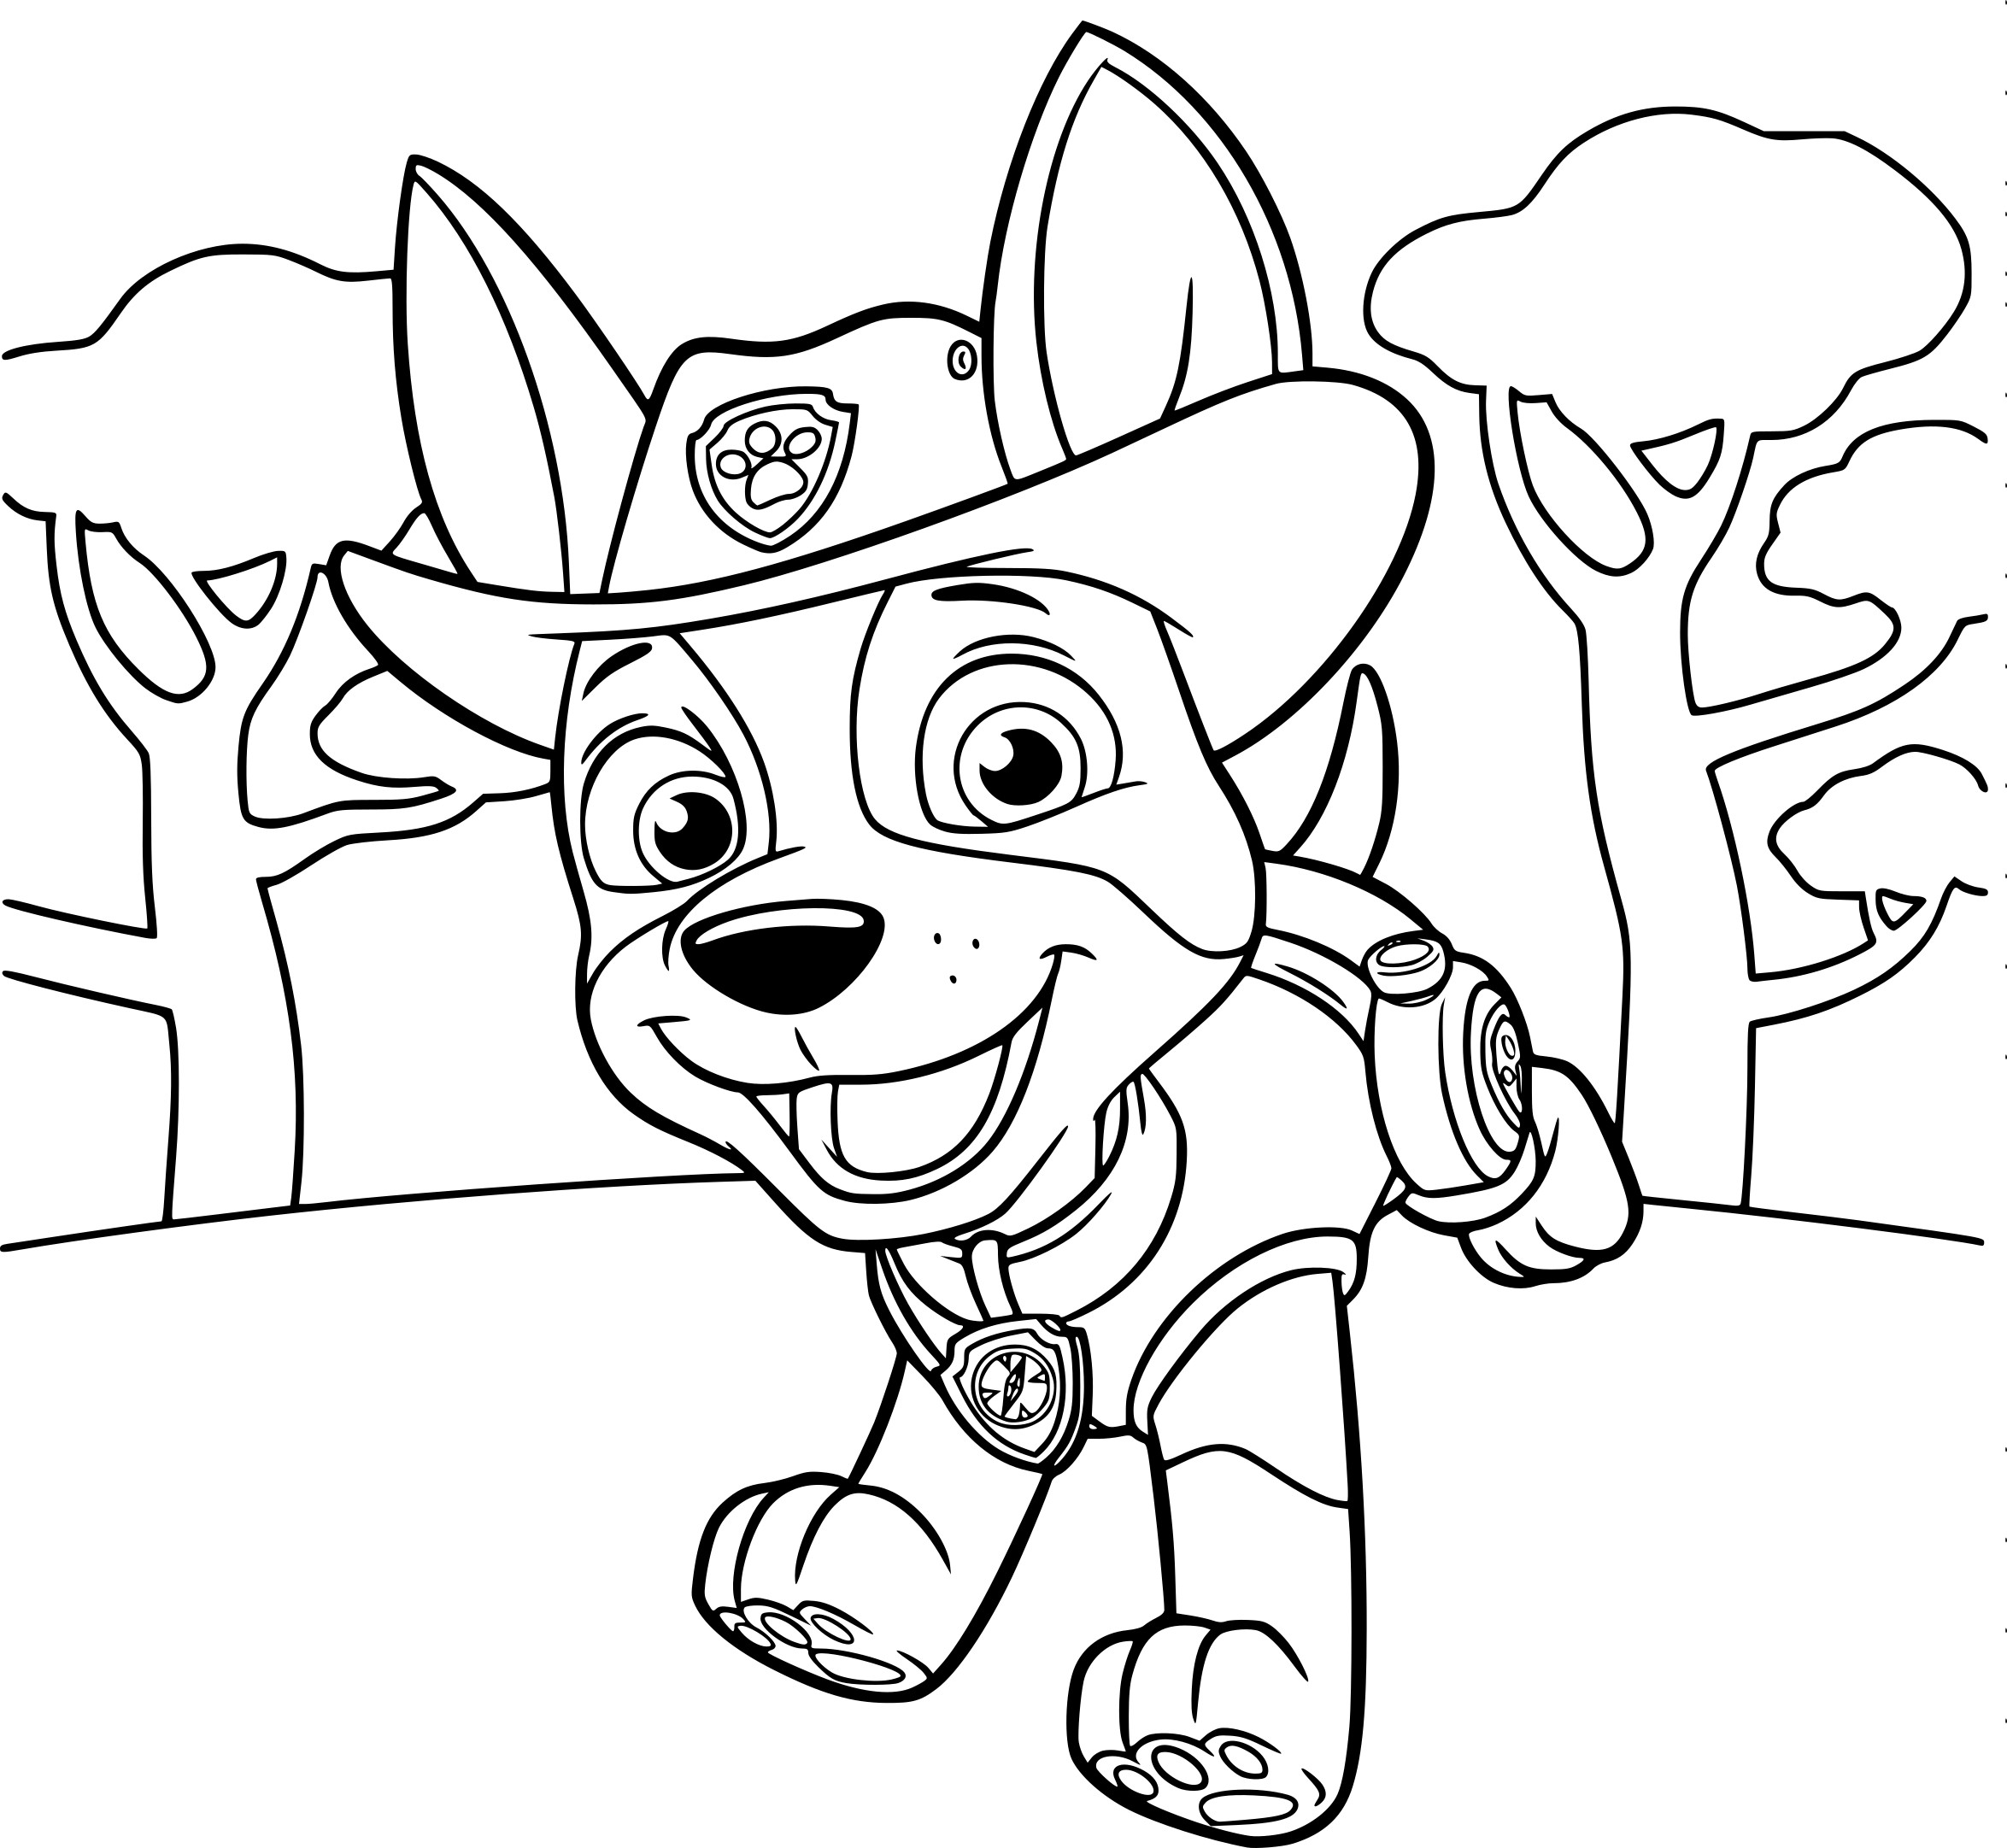 Coloring Pages Of Paw Patrol : Pokemon paw patrol coloring images